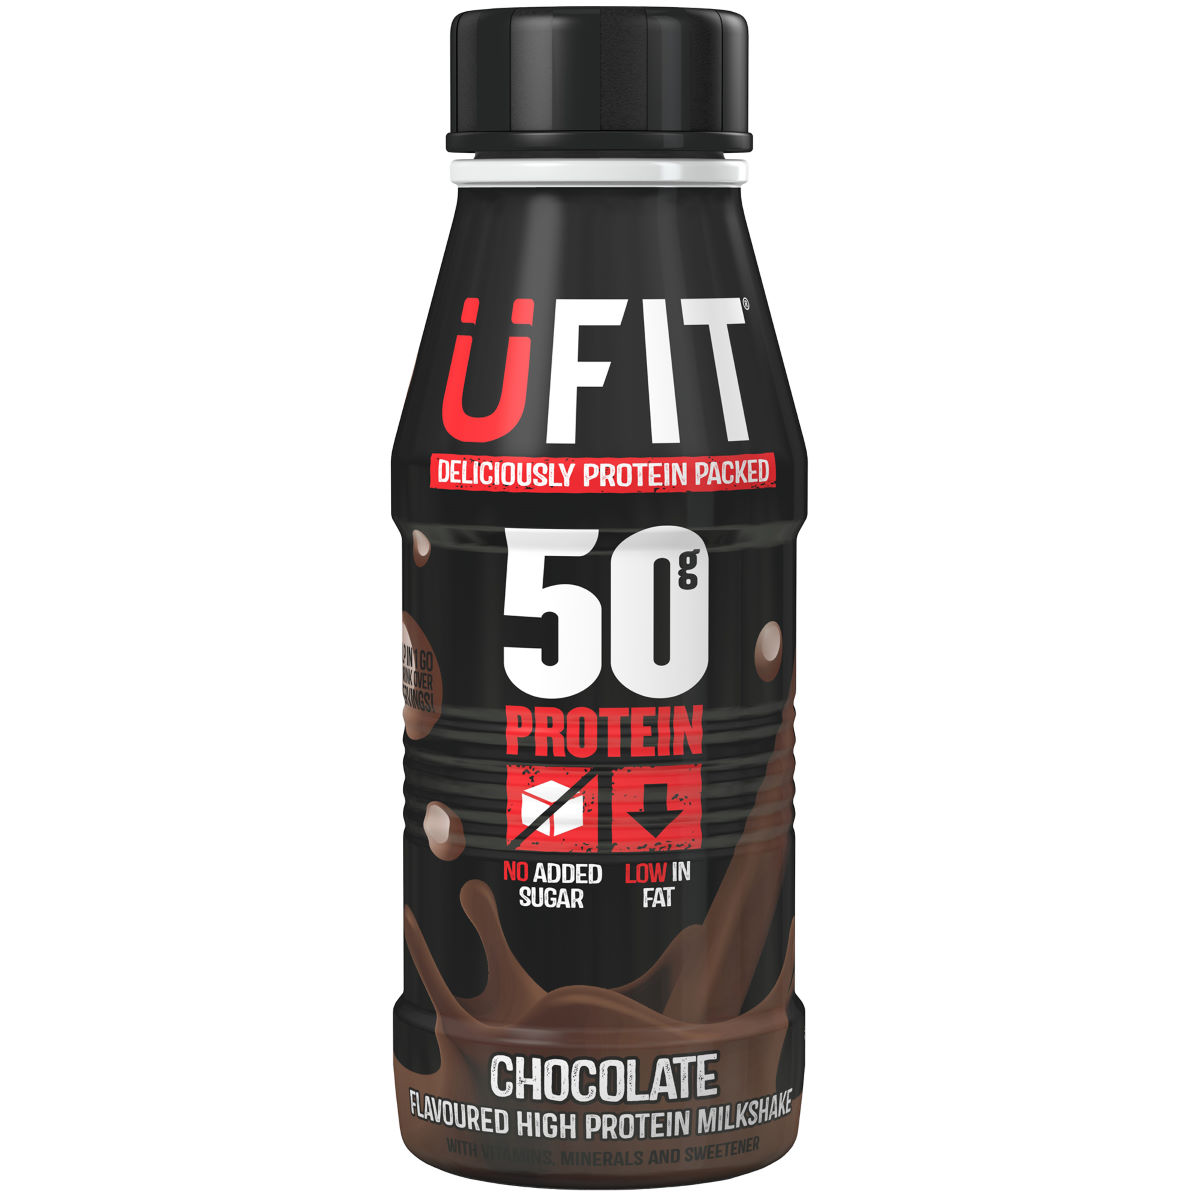 UFIT UFIT High Protein Drink (500ml)   Ready to Drink